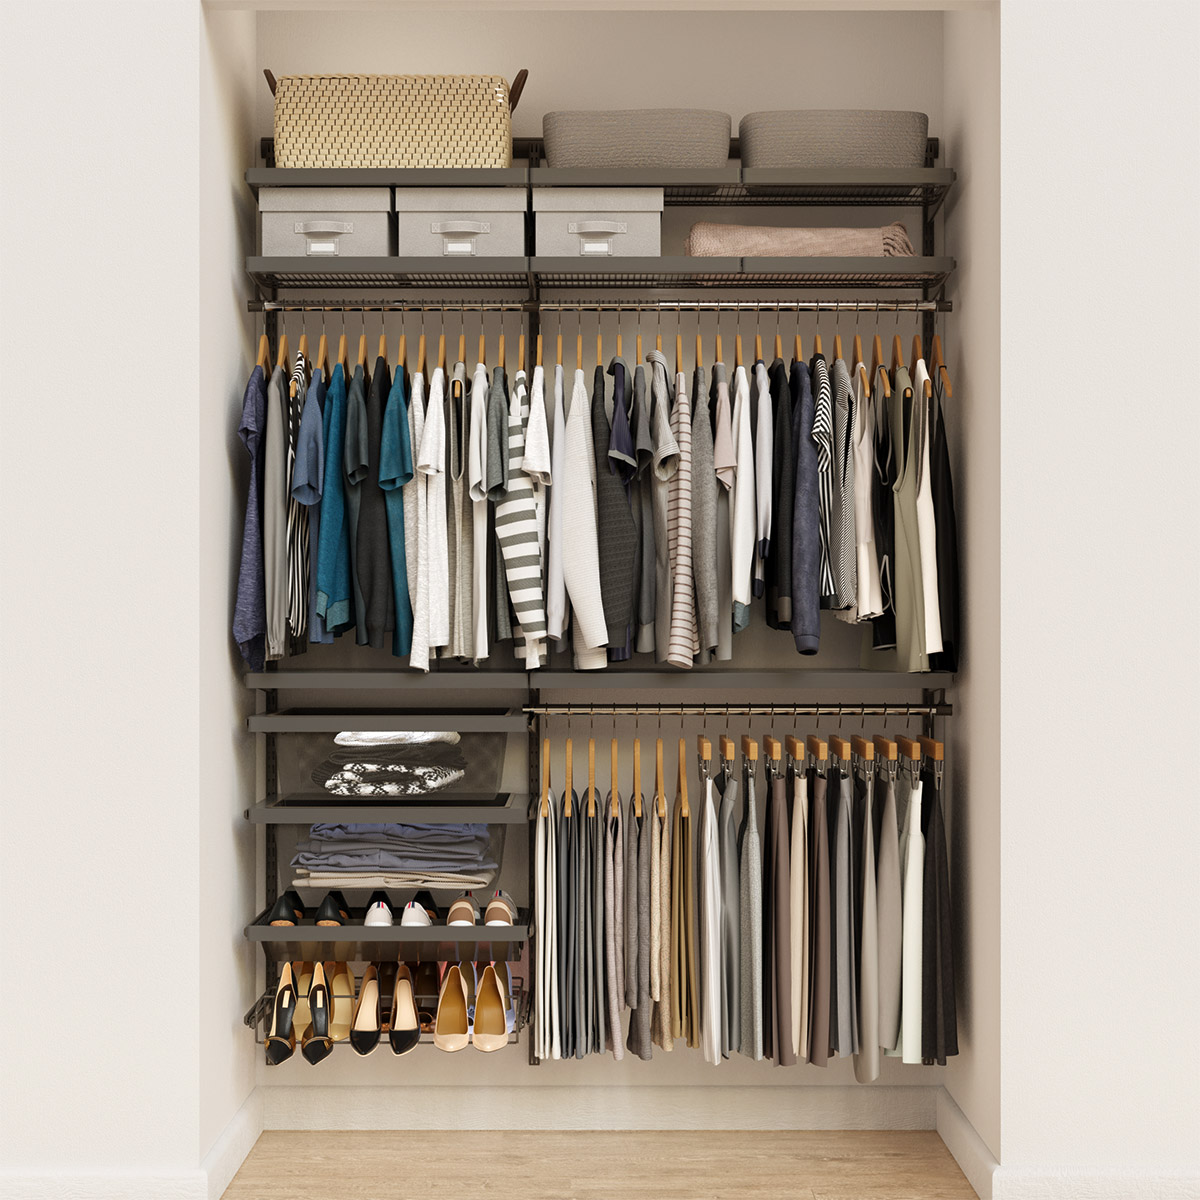 Elfa Decor 5' Graphite & Grey Reach-In Closet